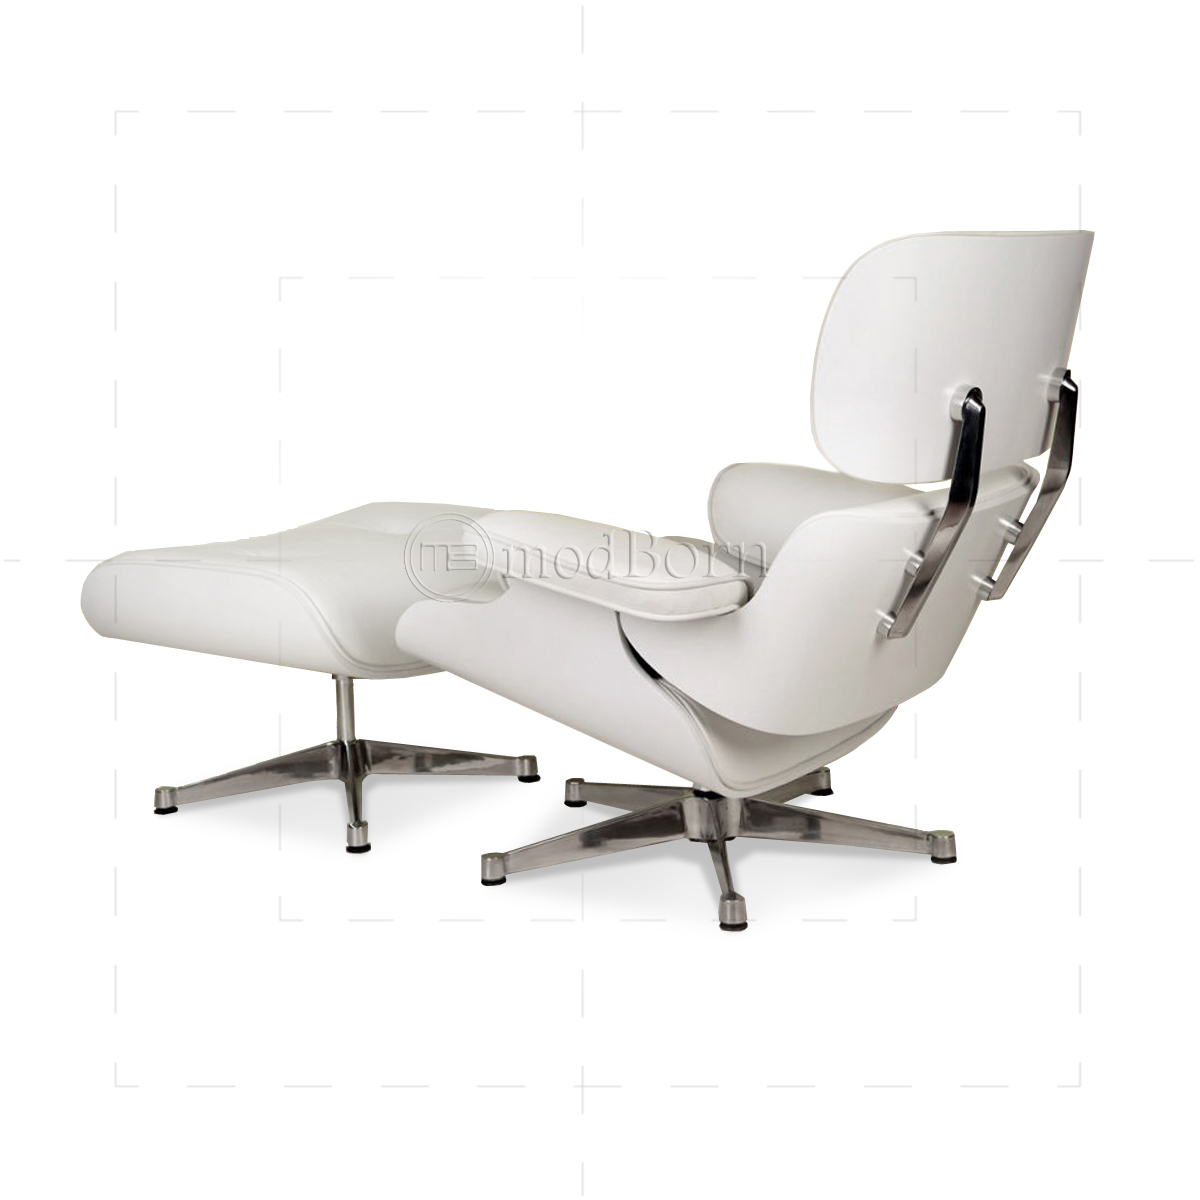 Eames style lounge chair and ottoman white leather white for Eames replica deutschland